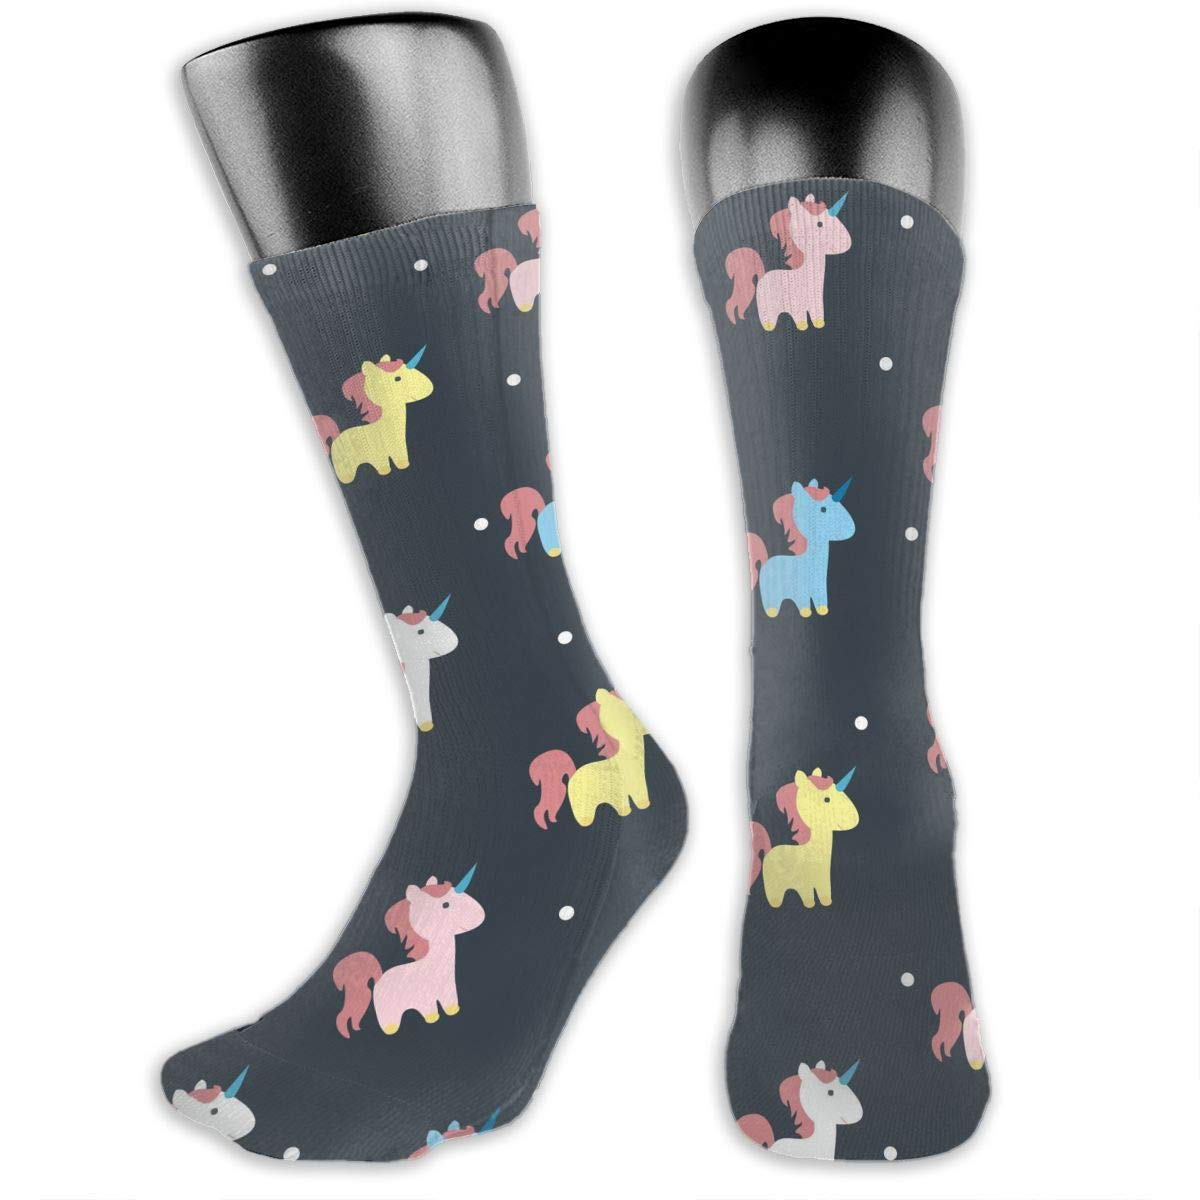 OLGCZM Unicorn Dot Pattern Men Womens Thin High Ankle Casual Socks Fit Outdoor Hiking Trail